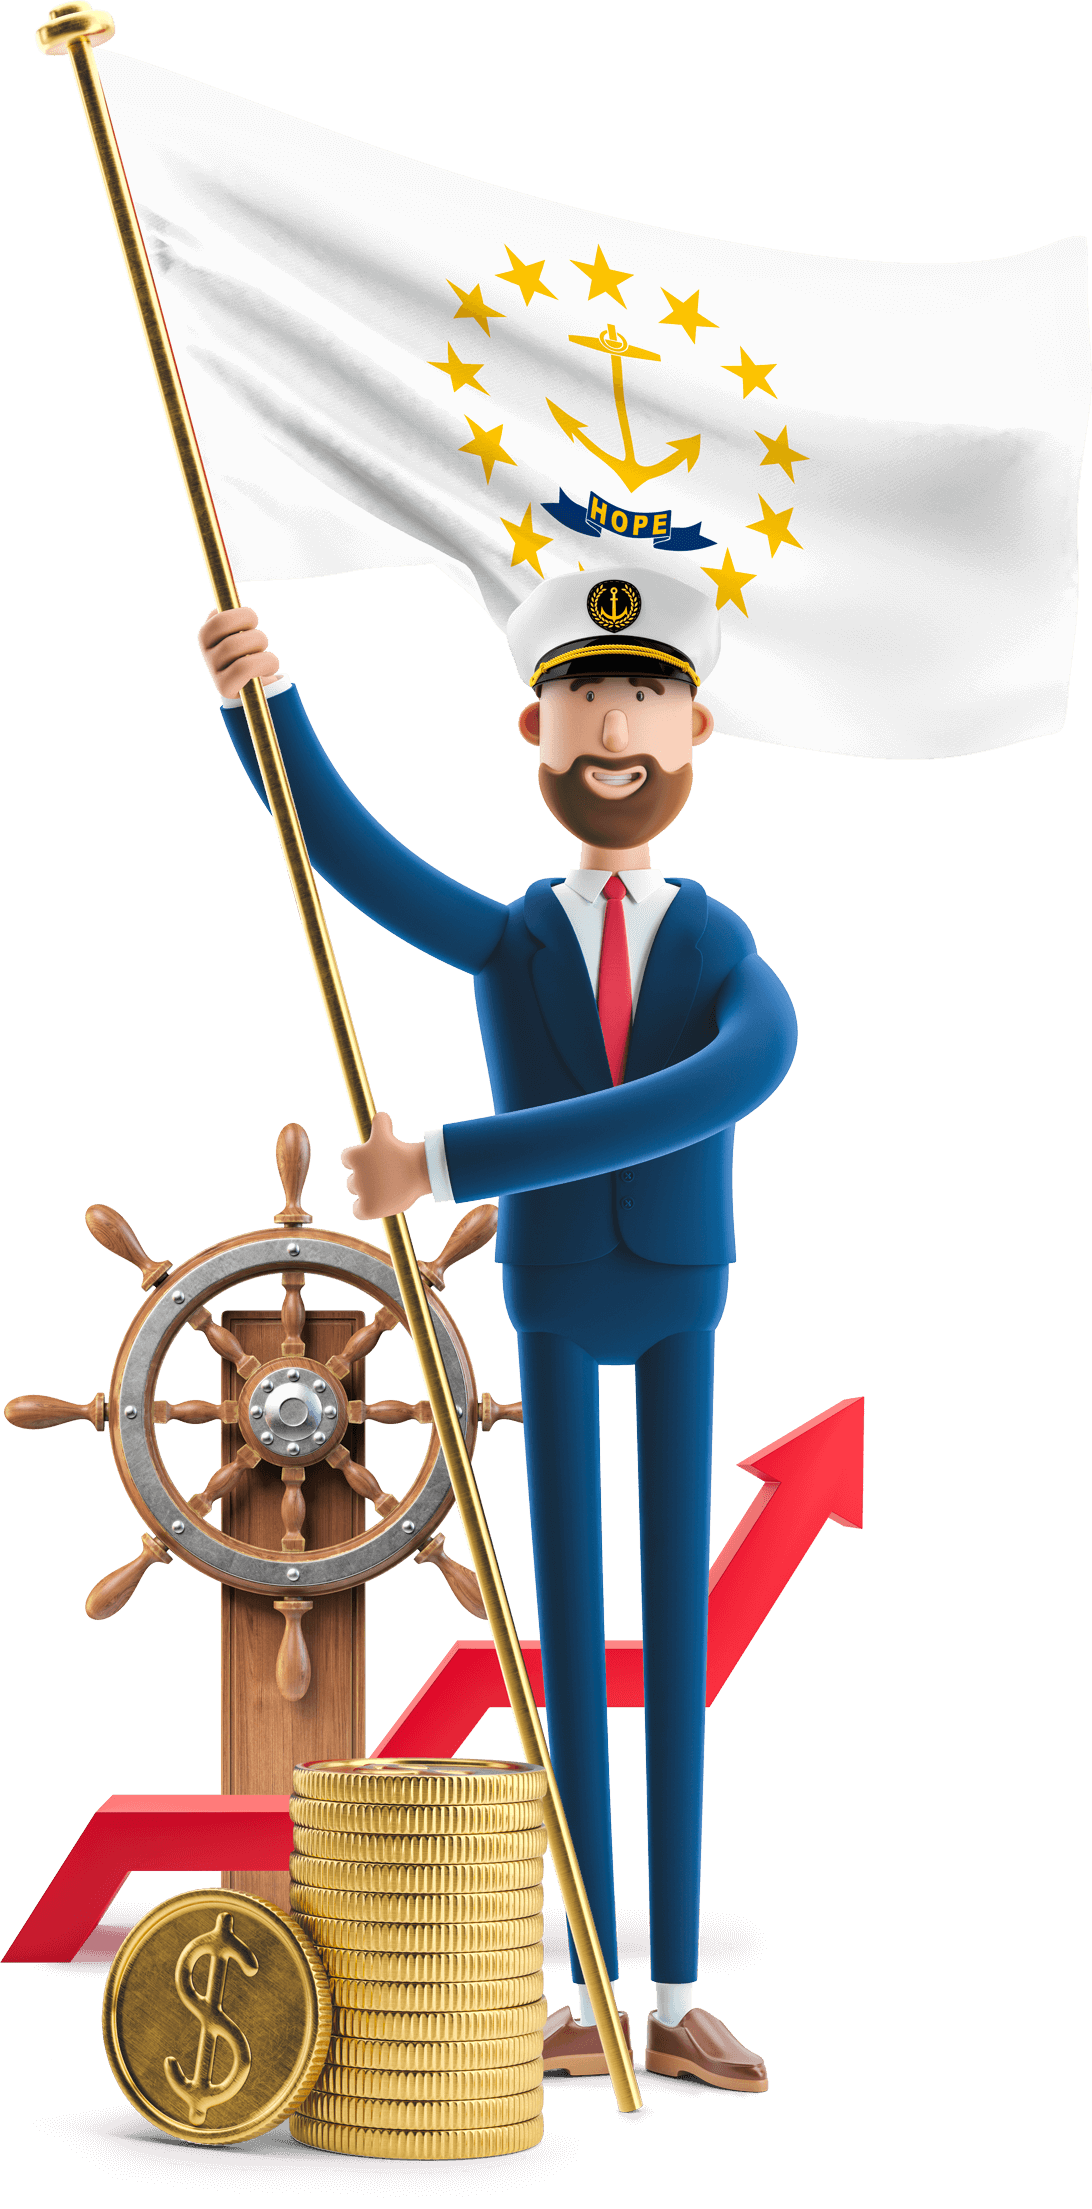 Rhode Island flag held by MetCredit USA businessman who's wearing a captain's hat and standing beside the helm